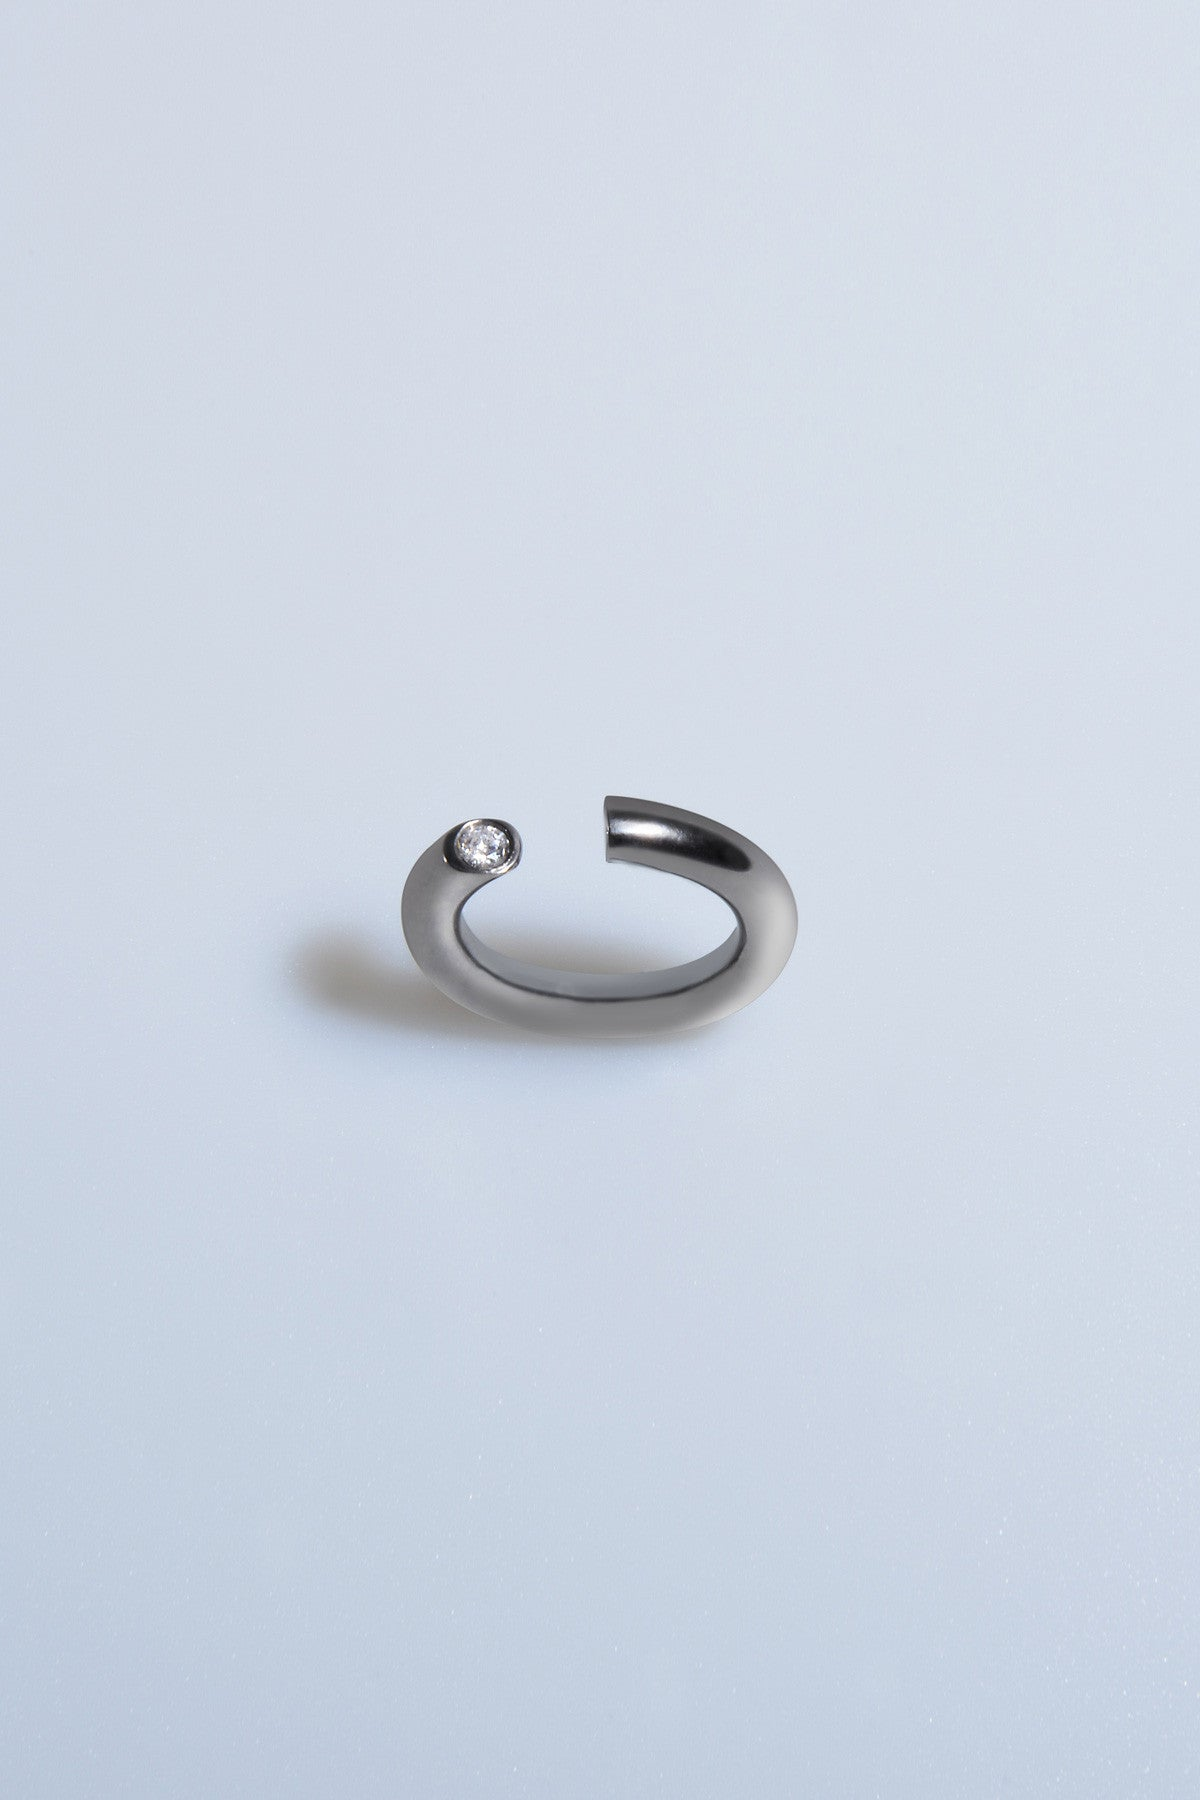 4mm Open Band Ring